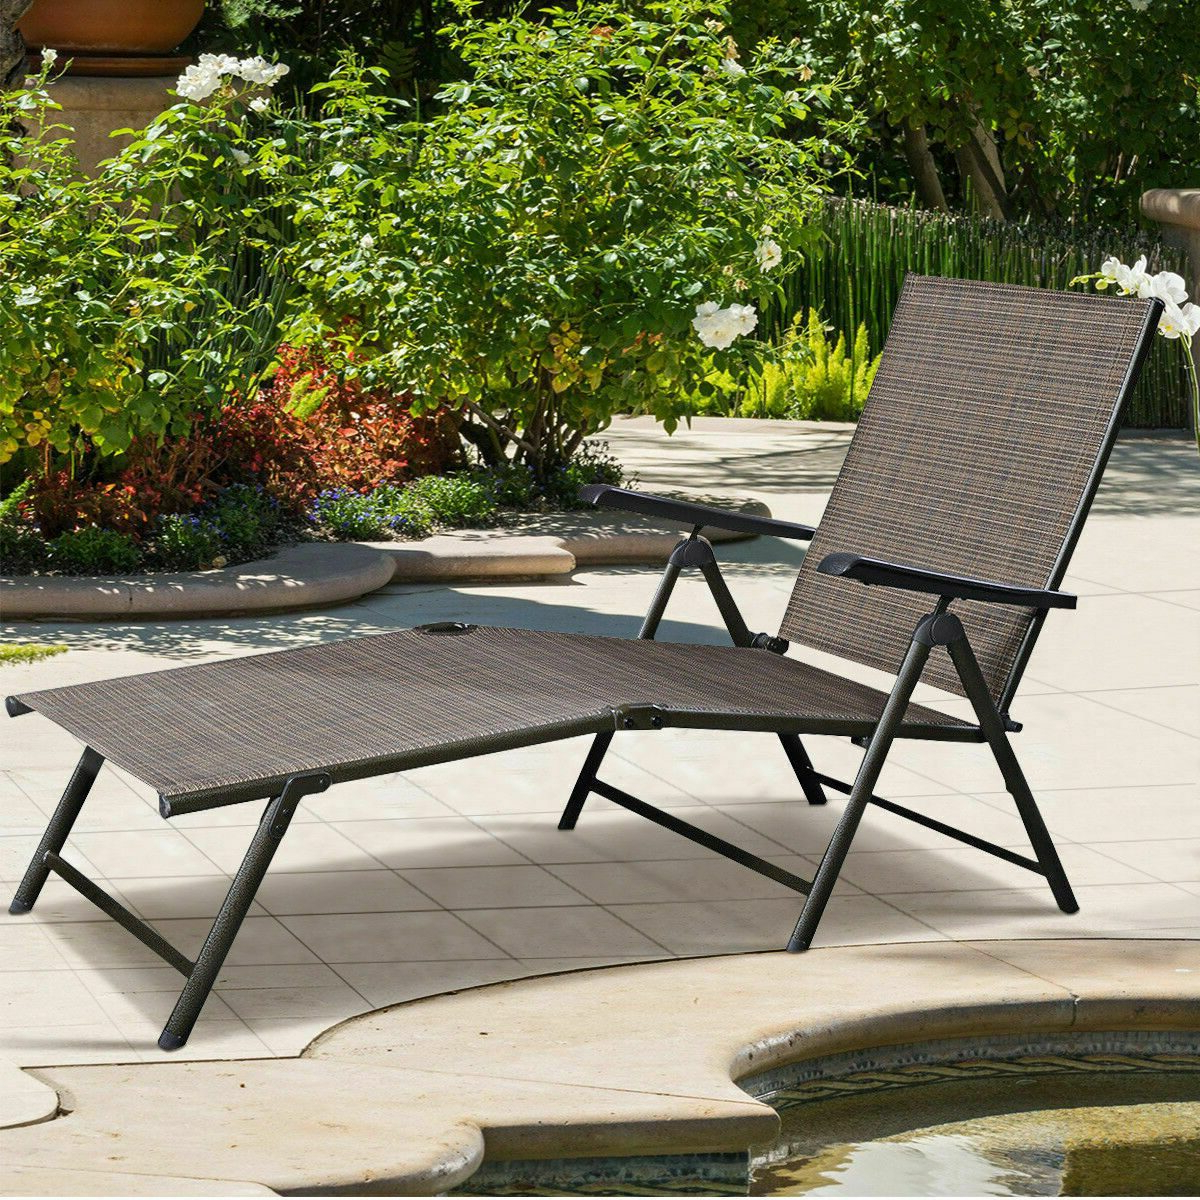 Most Recent Outdoor Yard Pool Recliner Folding Lounge Table Chairs In Citycw Adjustable Pool Chaise Lounge Chair Recliner Textilene Outdoor Patio Furniture (View 19 of 25)